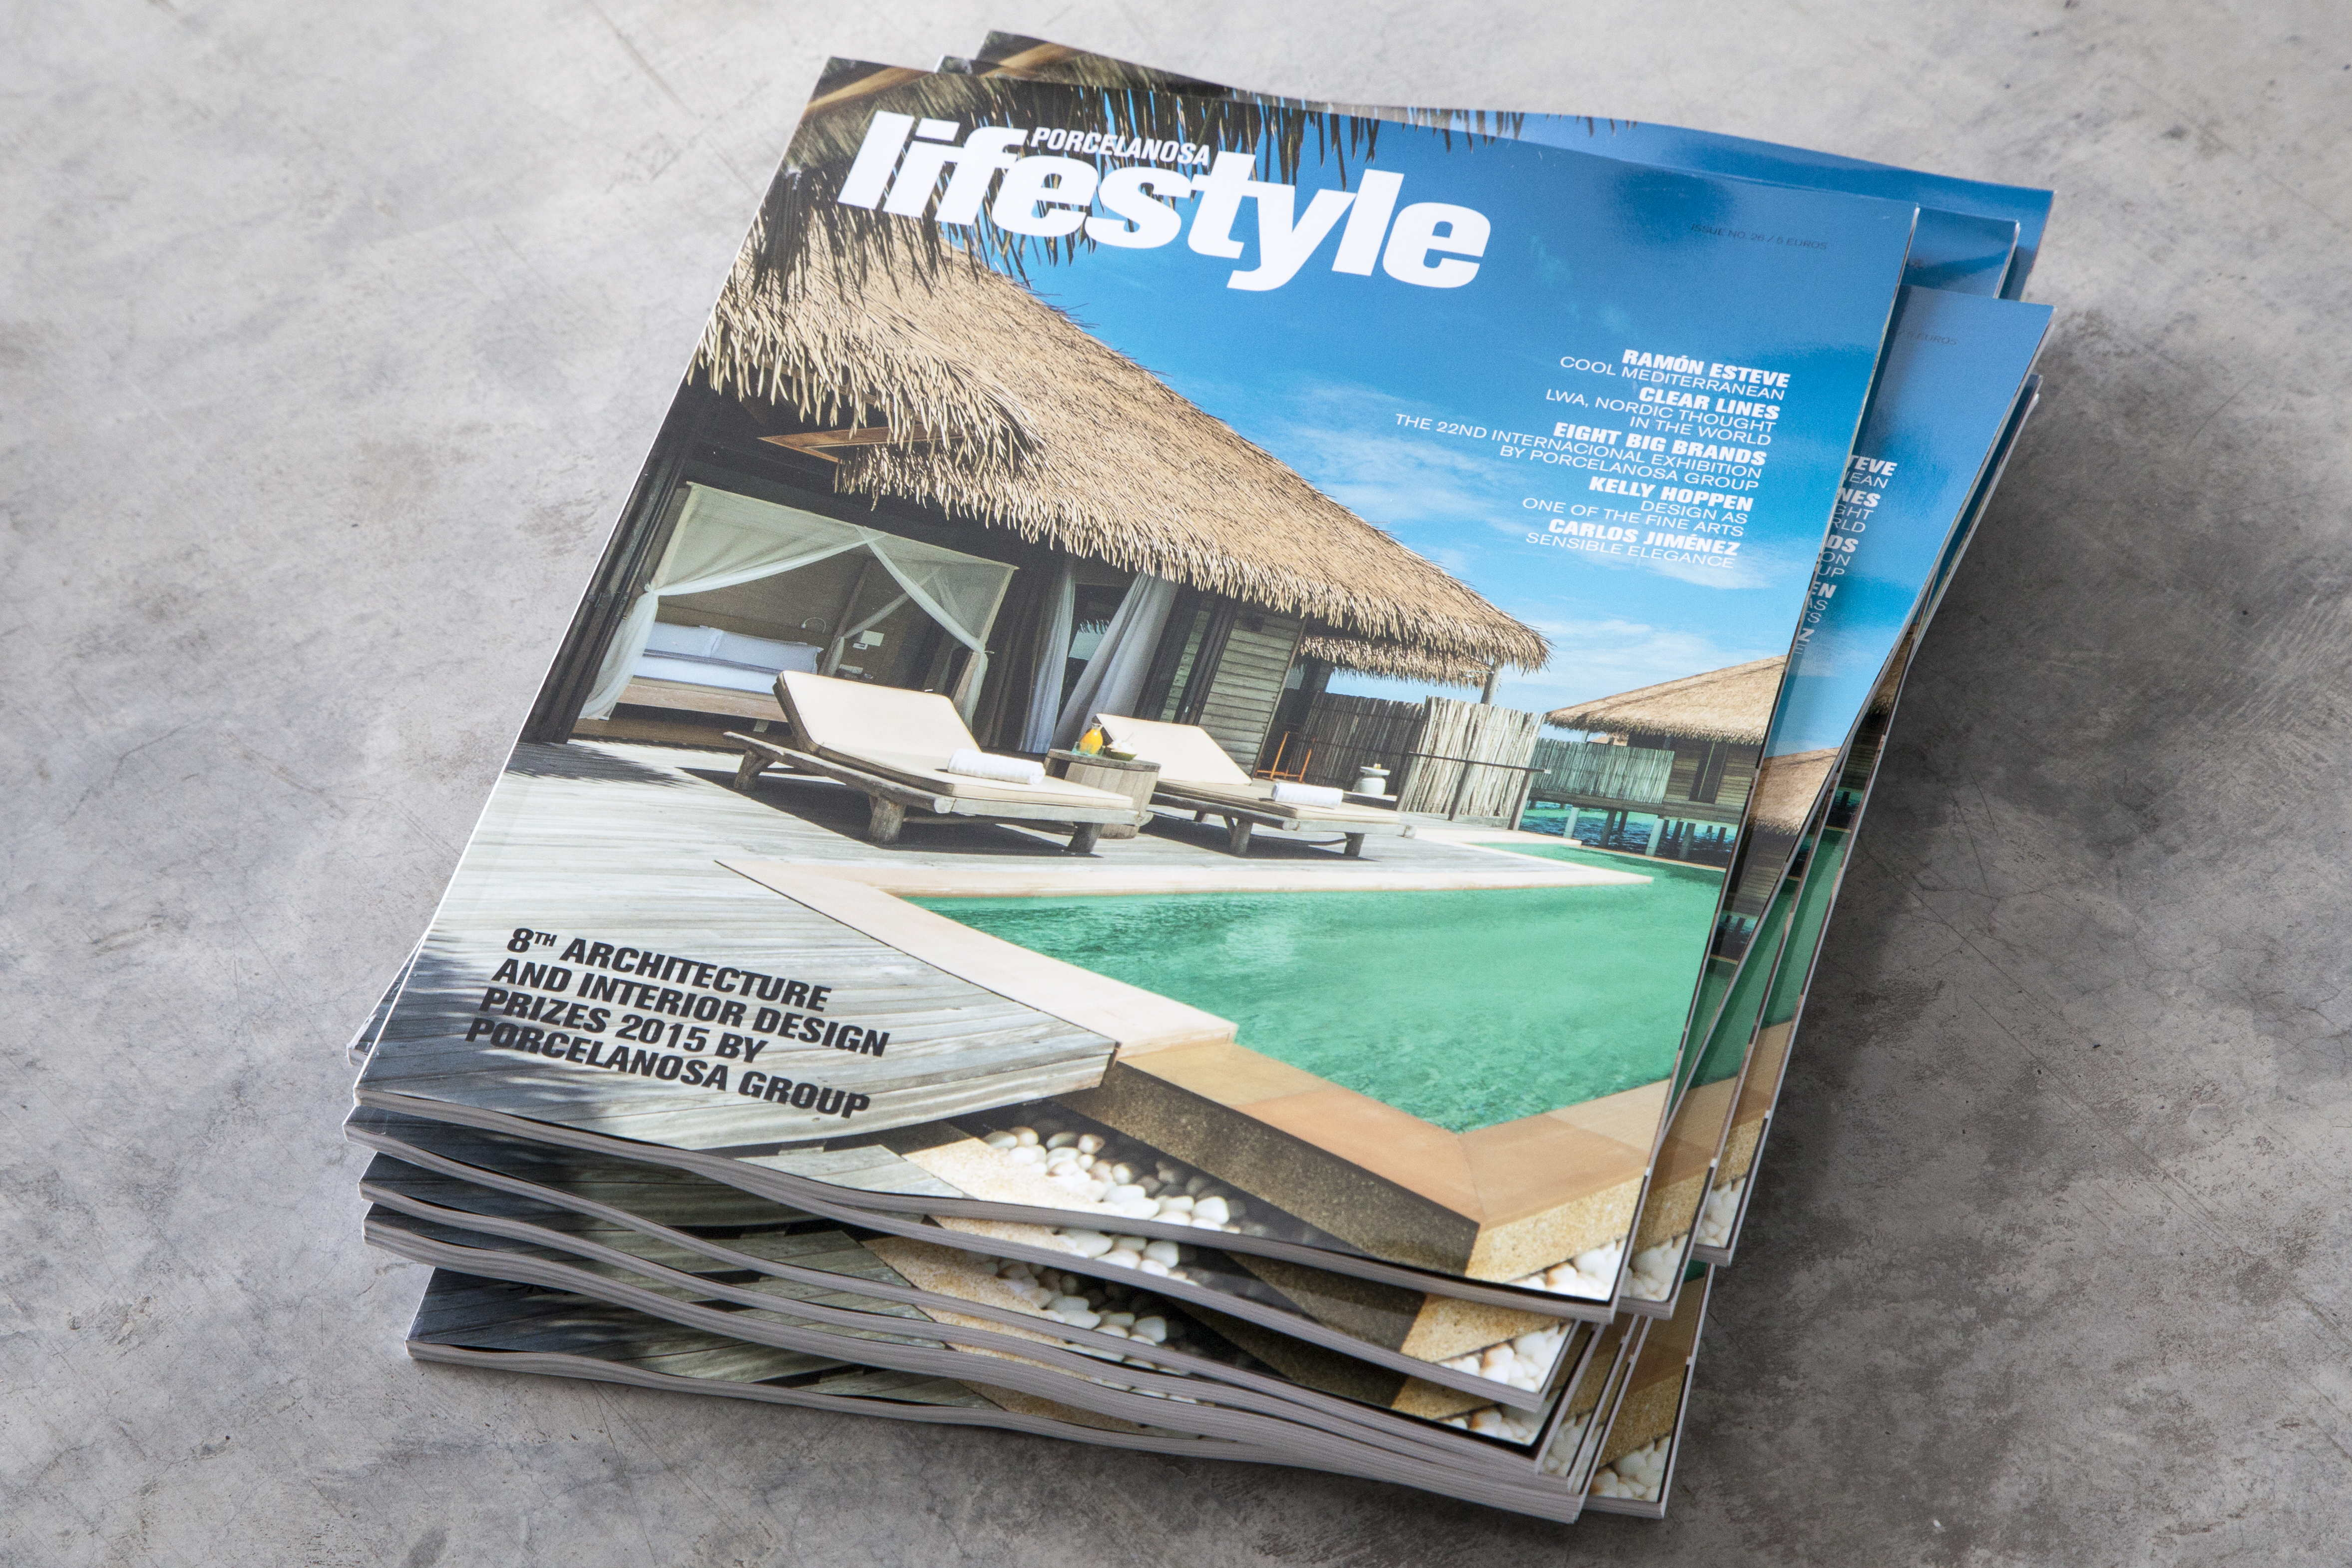 The new issue of LifeStyle Magazine by PORCELANOSA Group